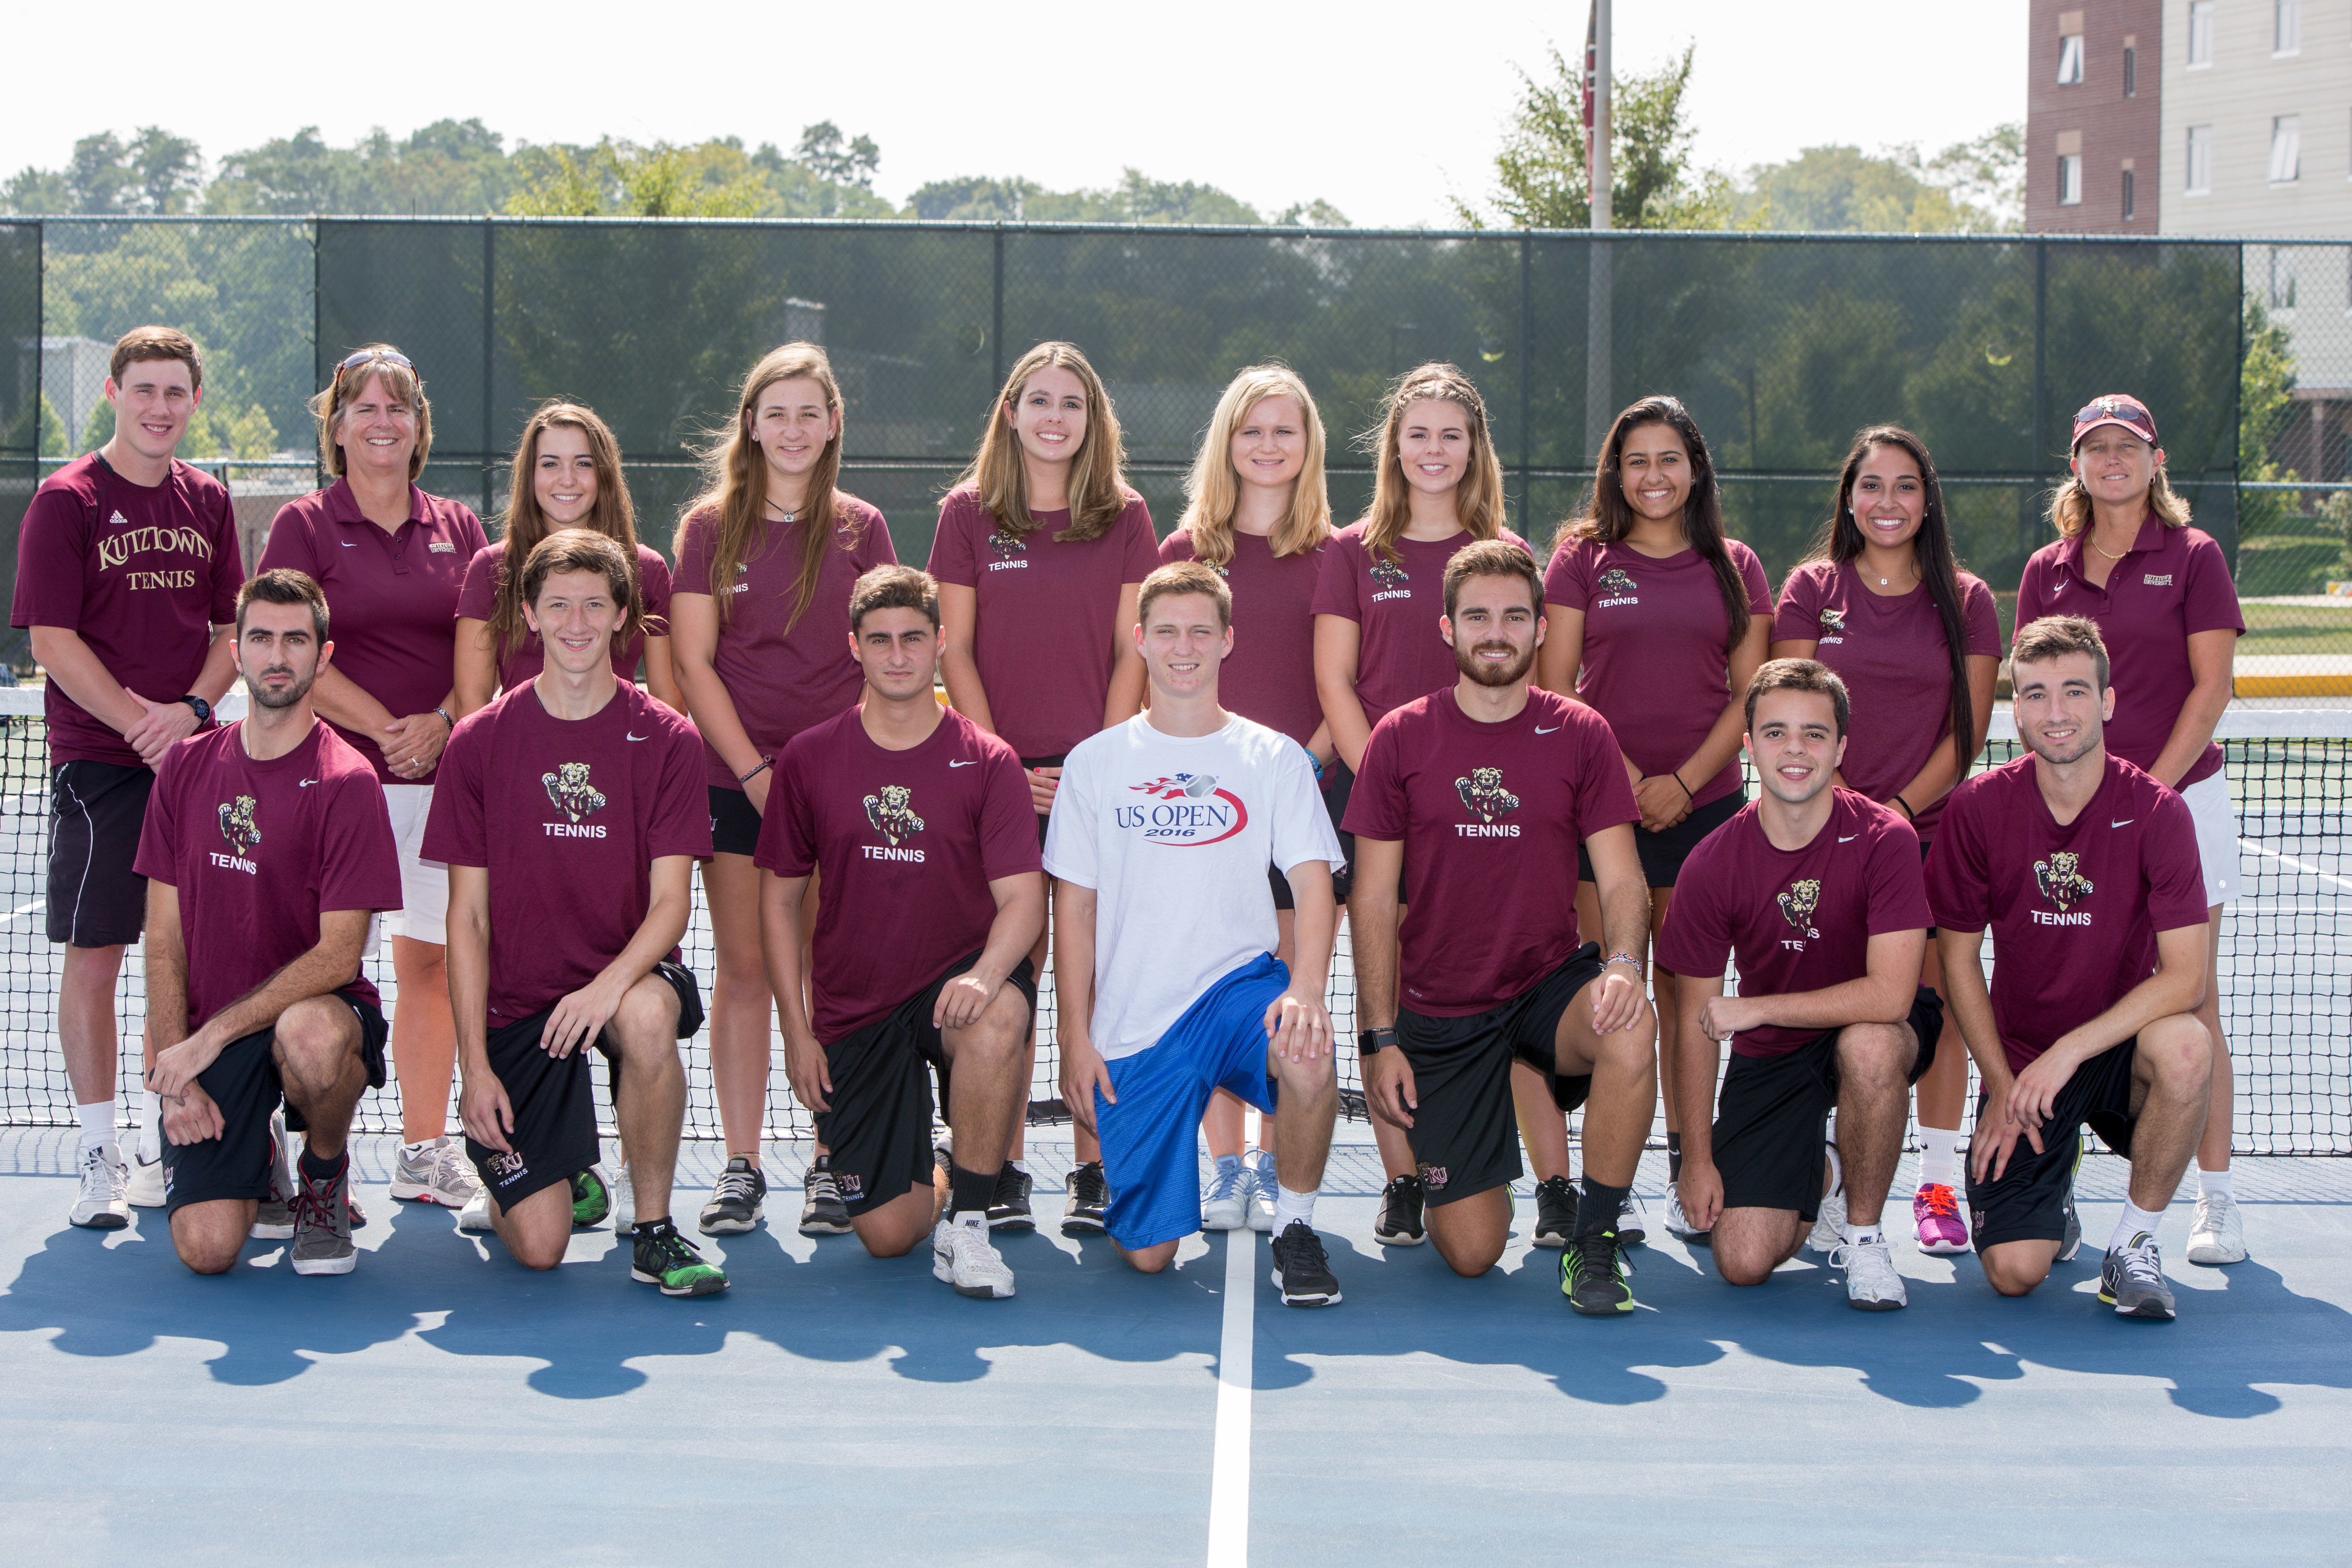 Tennis teams 2016